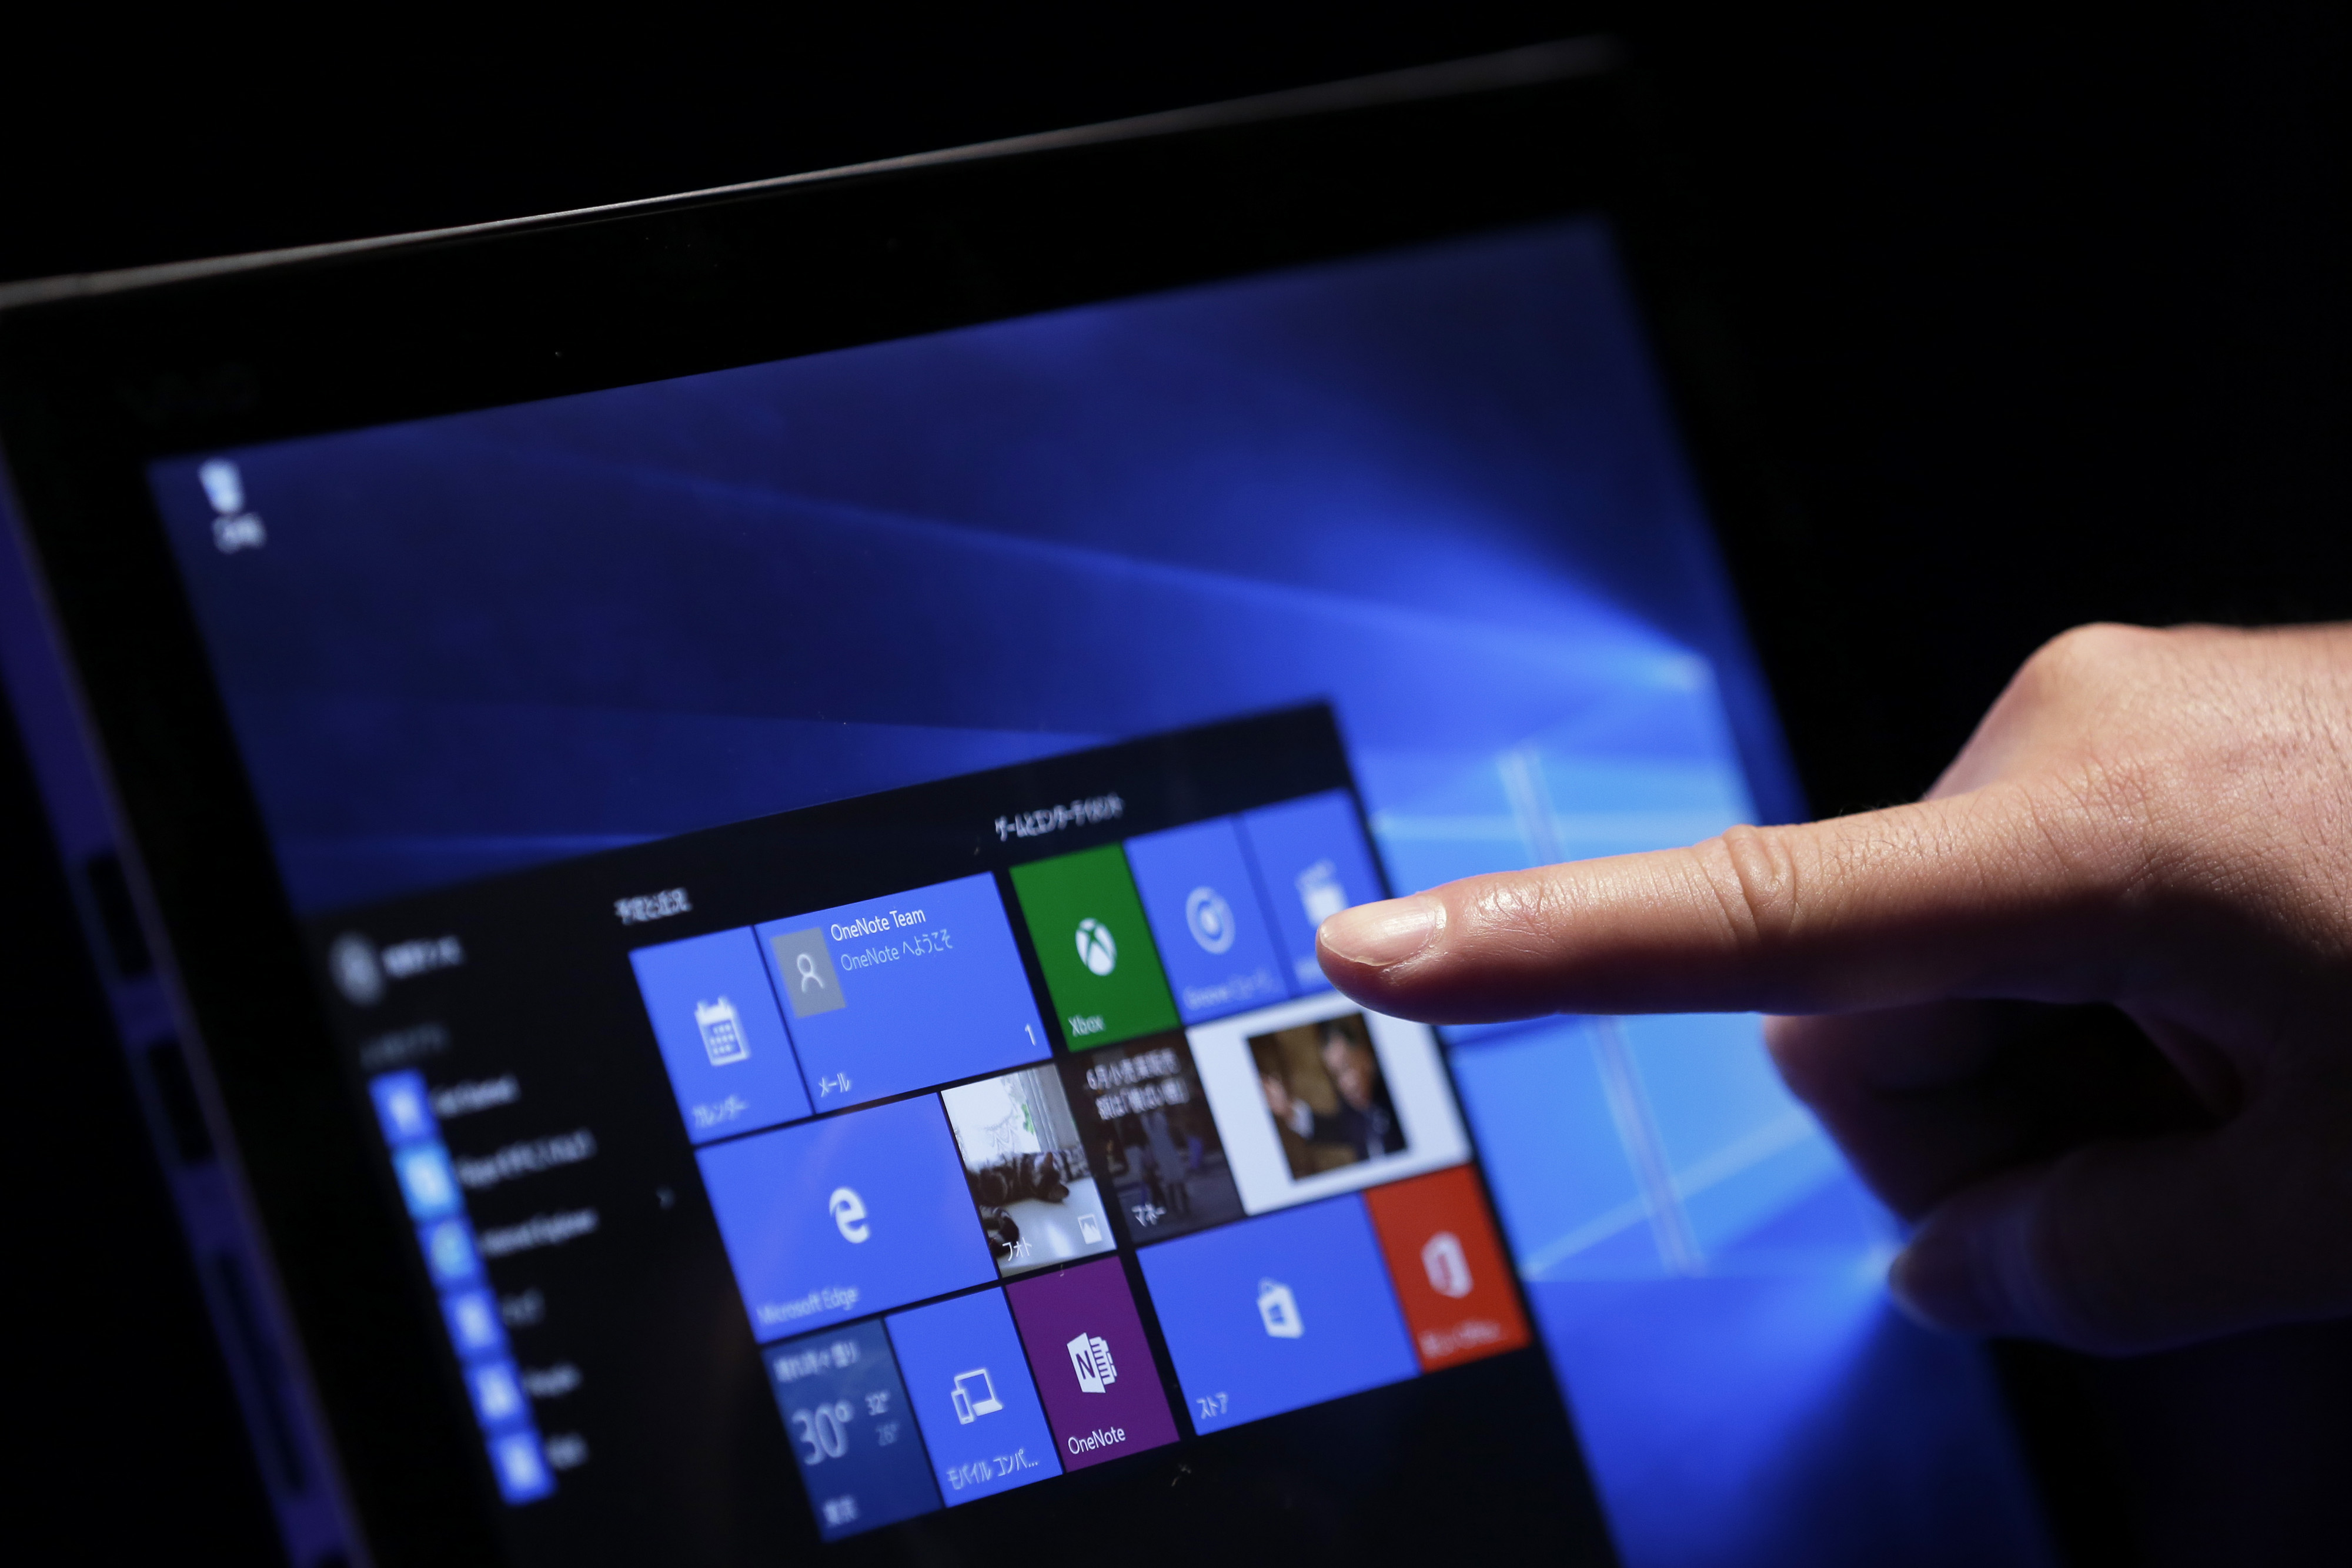 Windows 10 users should check their software is up to date